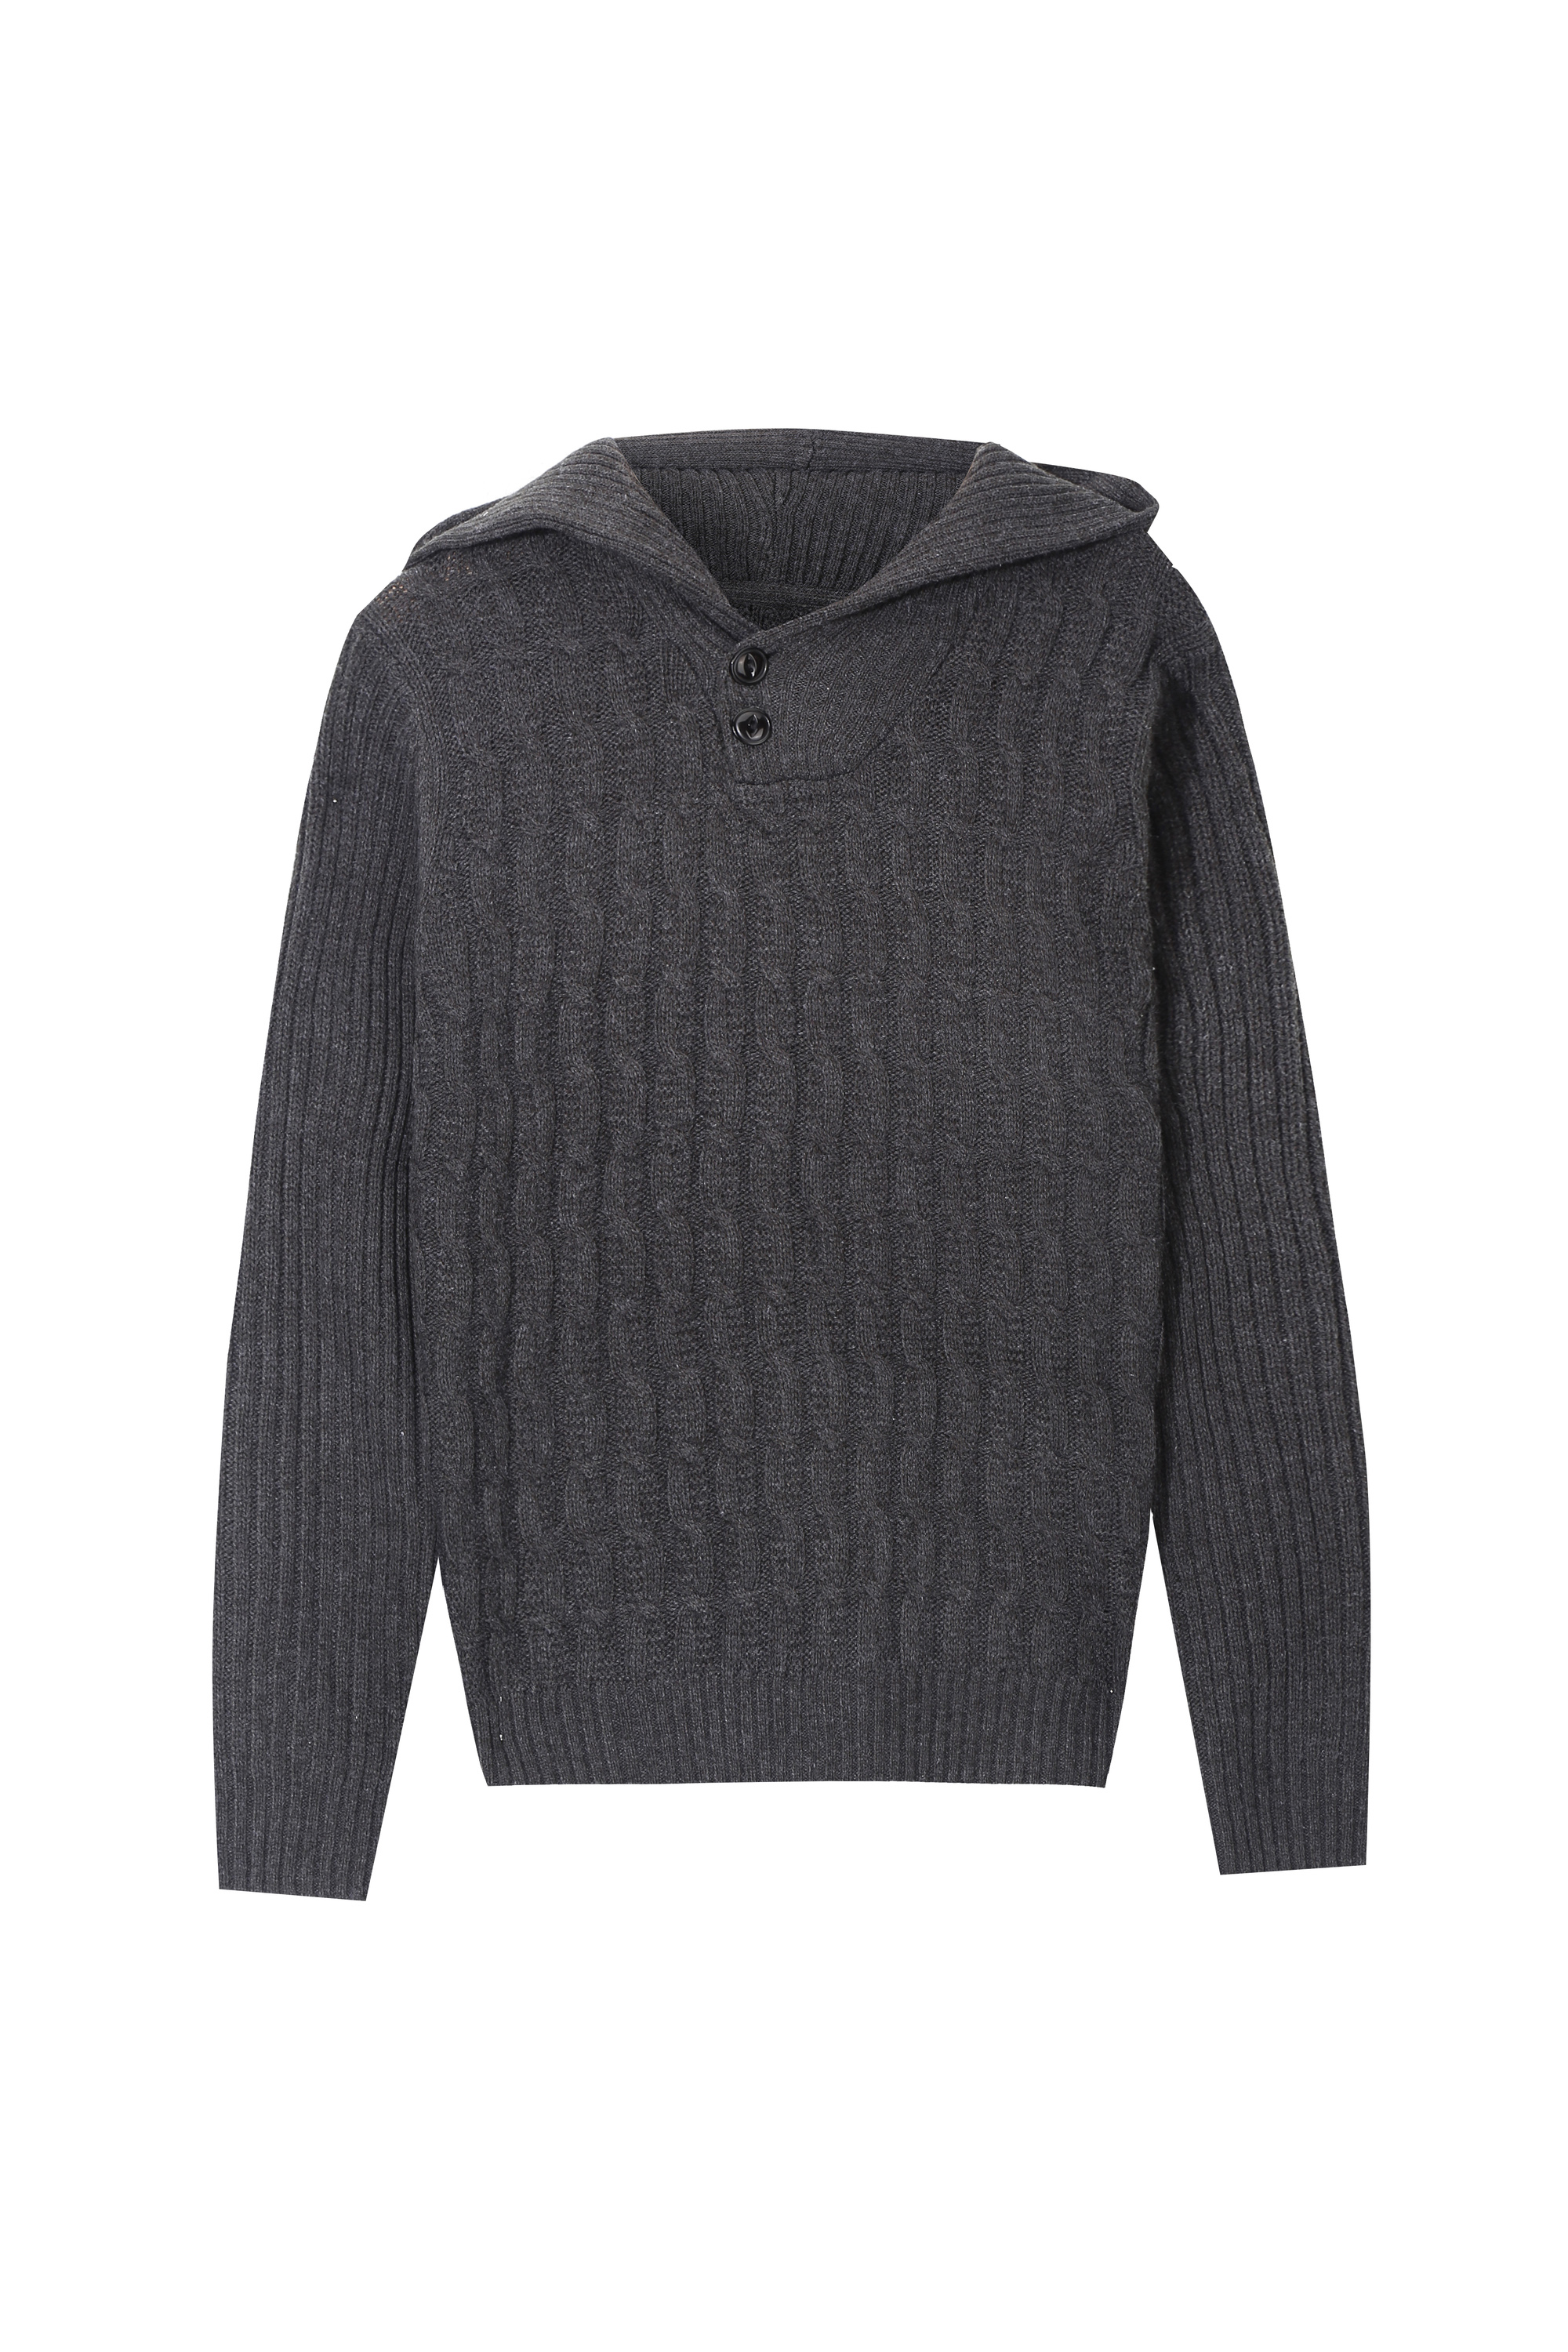 Men's Fashion Texture Knitted Hoodie Pullover